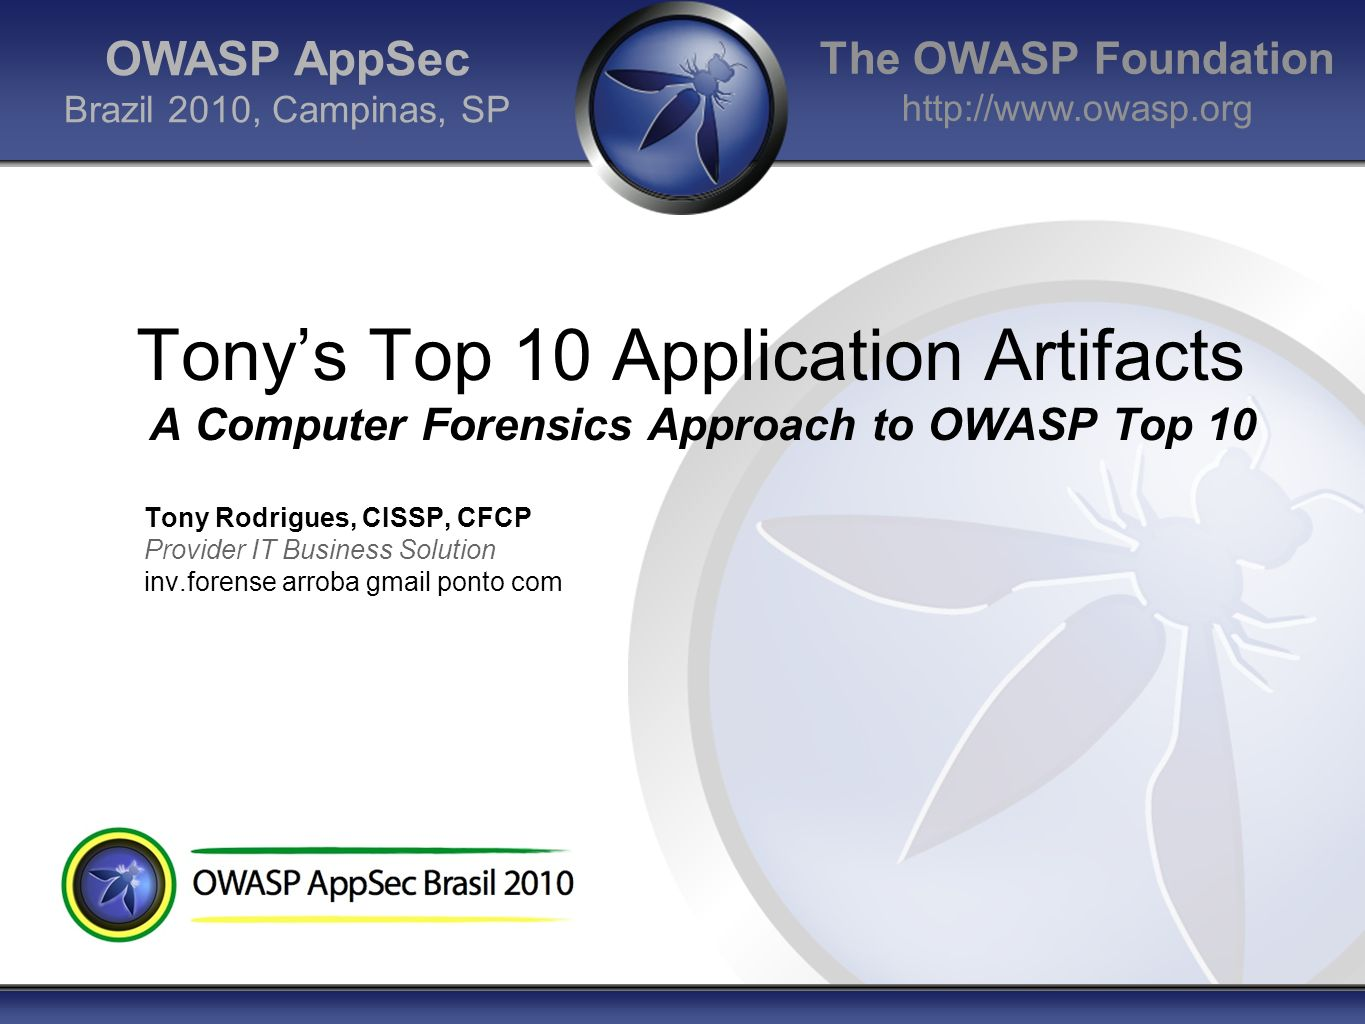 OWASP AppSecBrazil 2010, Campinas, SP. Tony's Top 10 Application Artifacts A Computer Forensics Approach to OWASP Top 10.